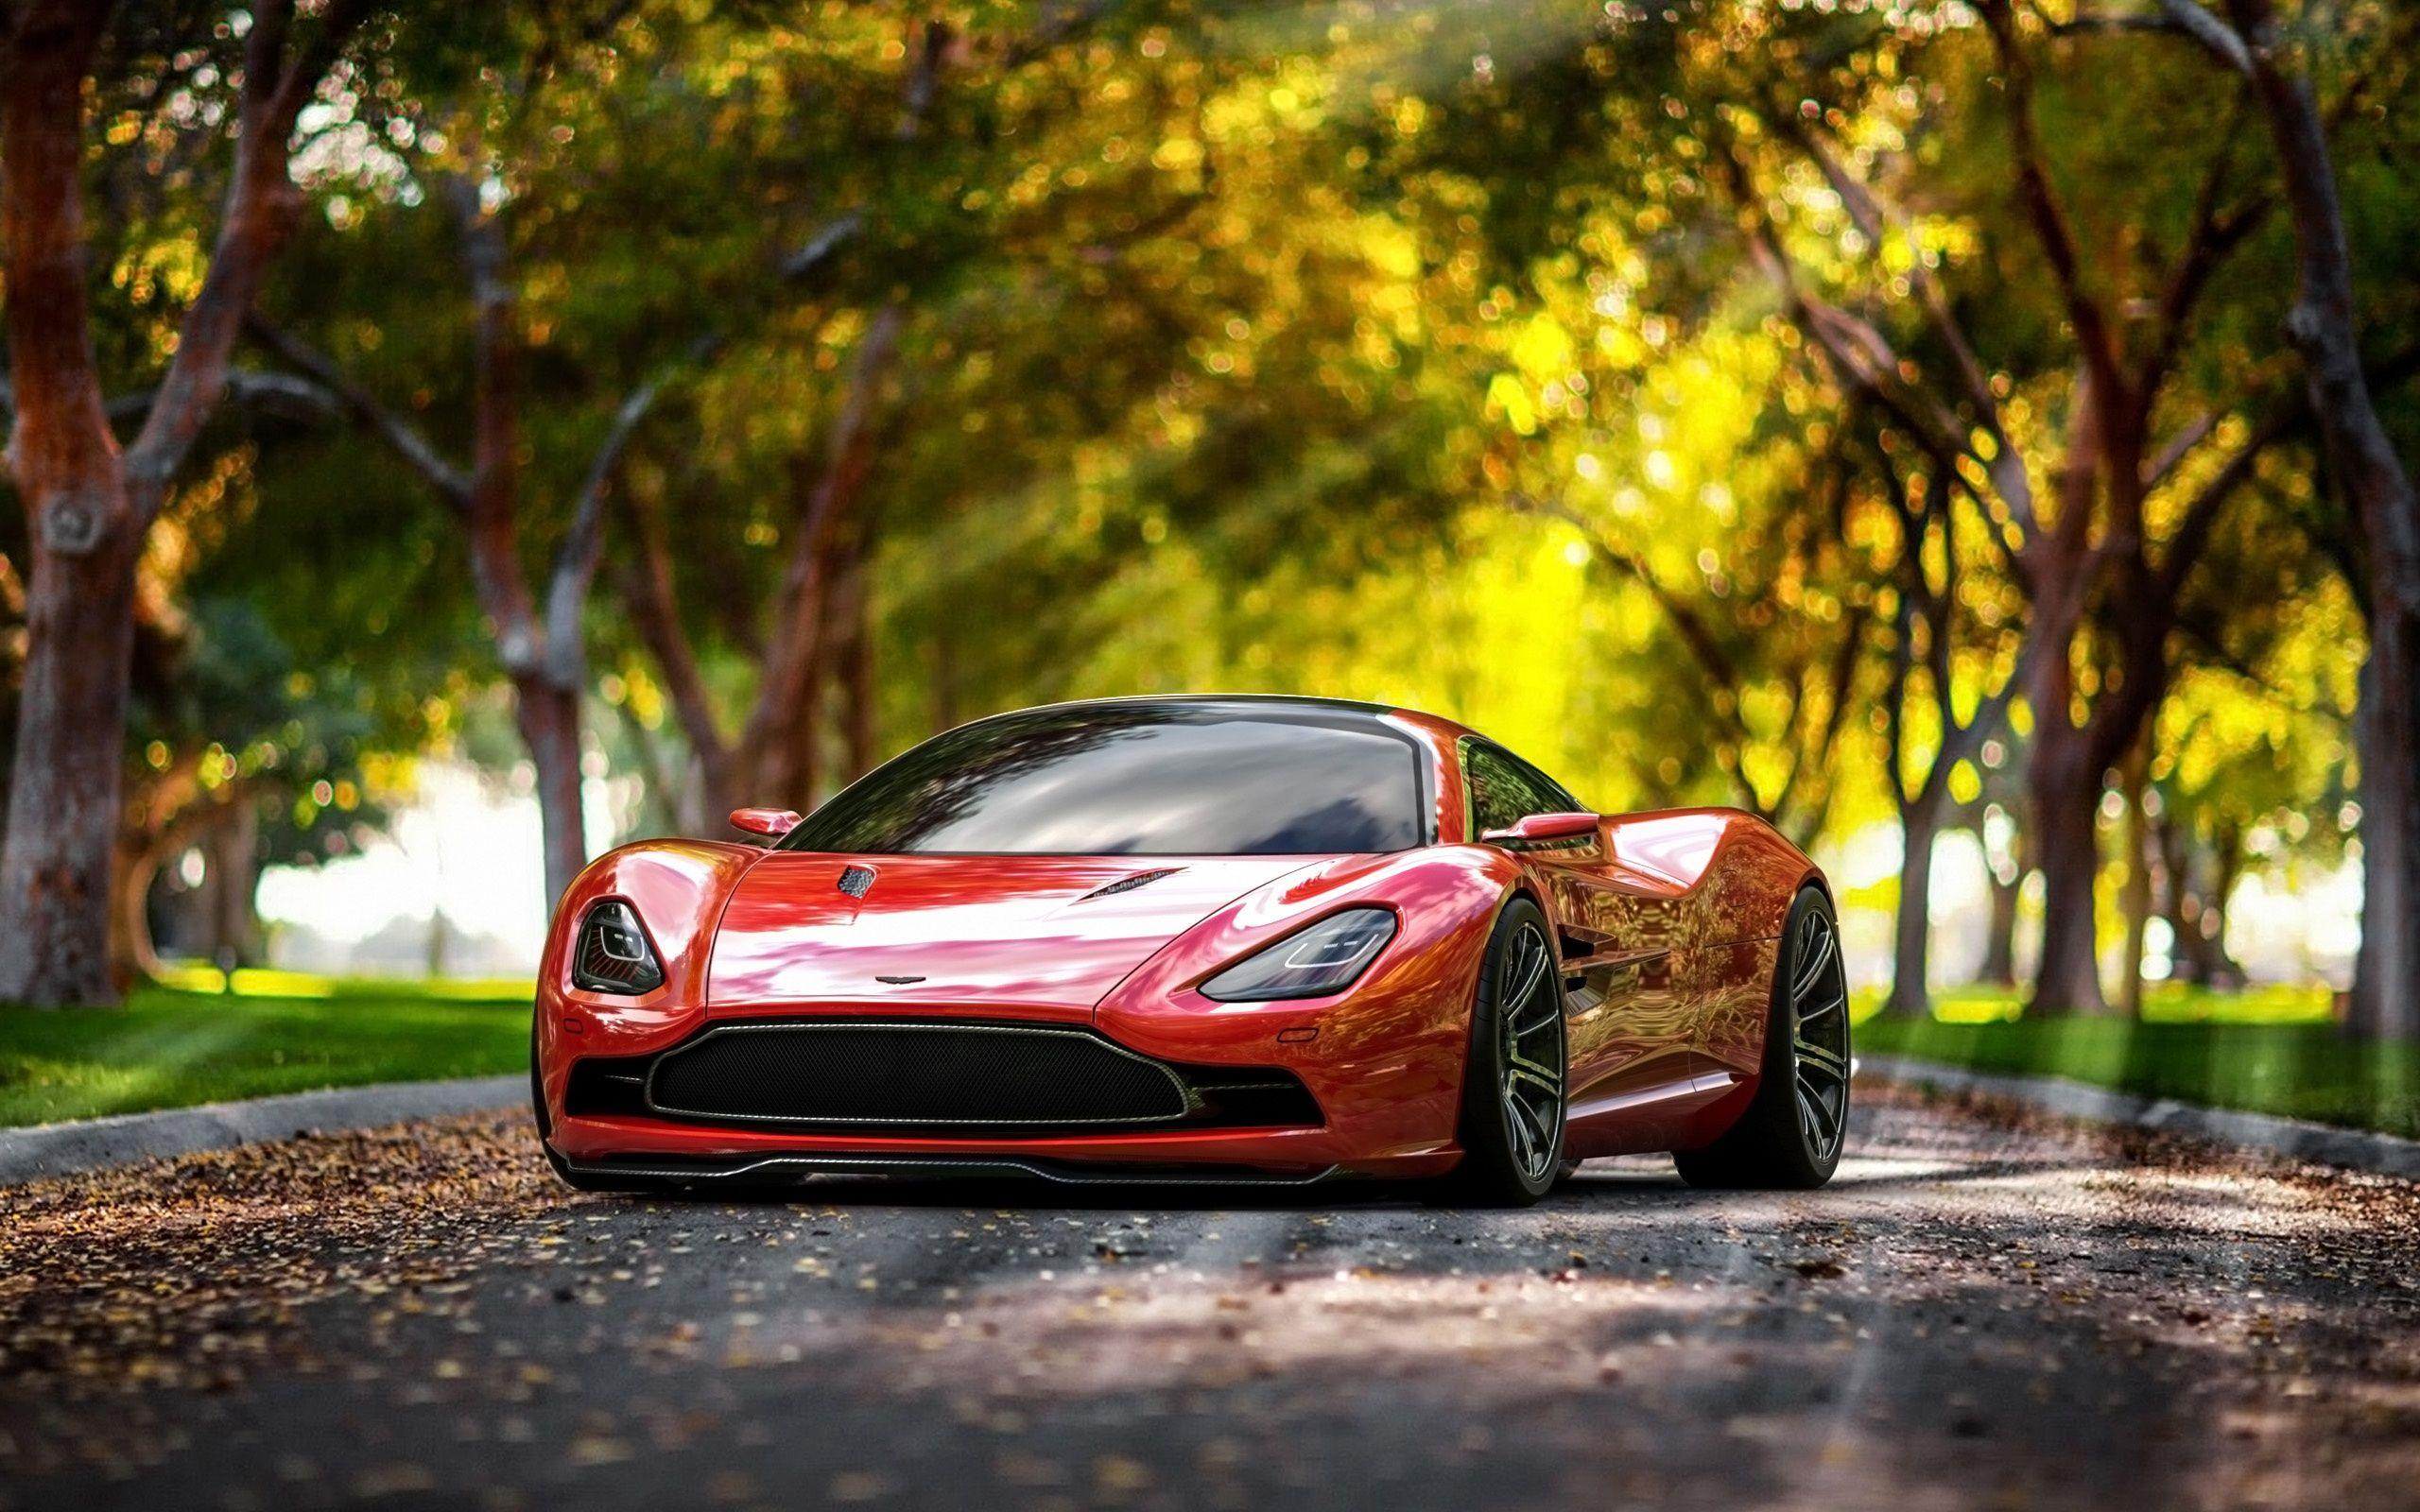 A quality selection of high resolution wallpapers featuring the most desirable cars in the world. Desktop Car 4k Wallpapers Wallpaper Cave